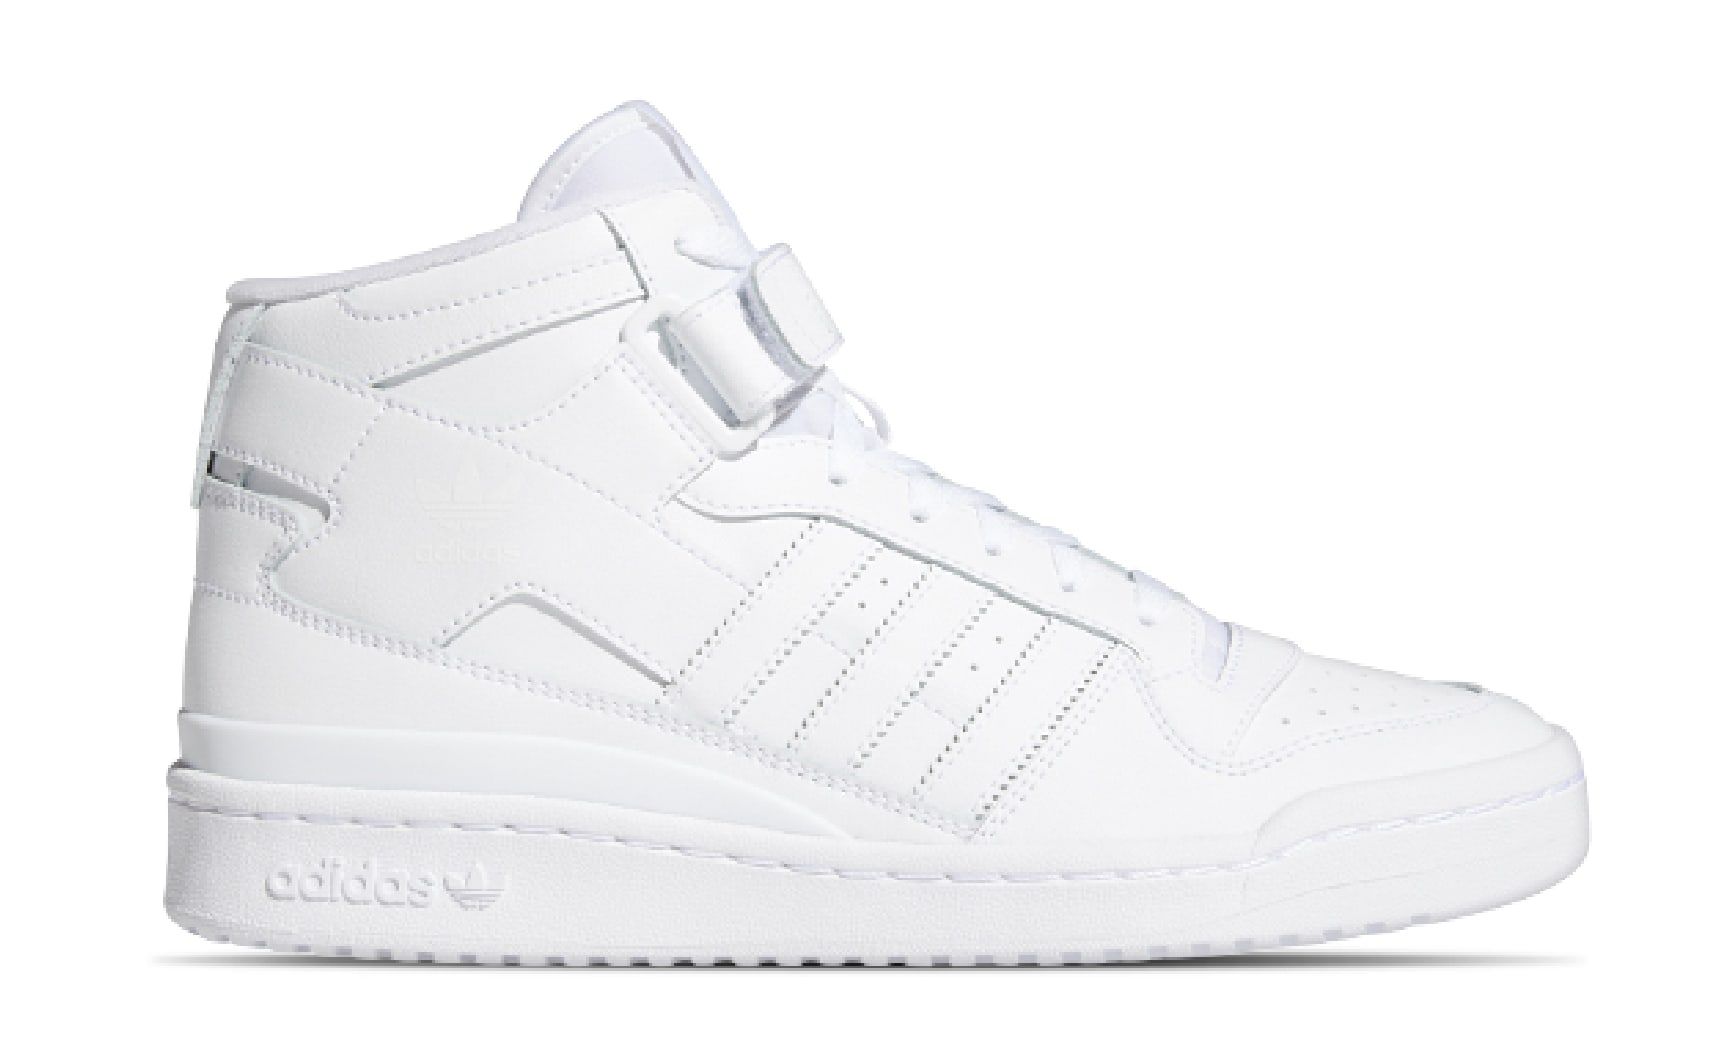 Adidas Forum Mid FY4975 Release Date